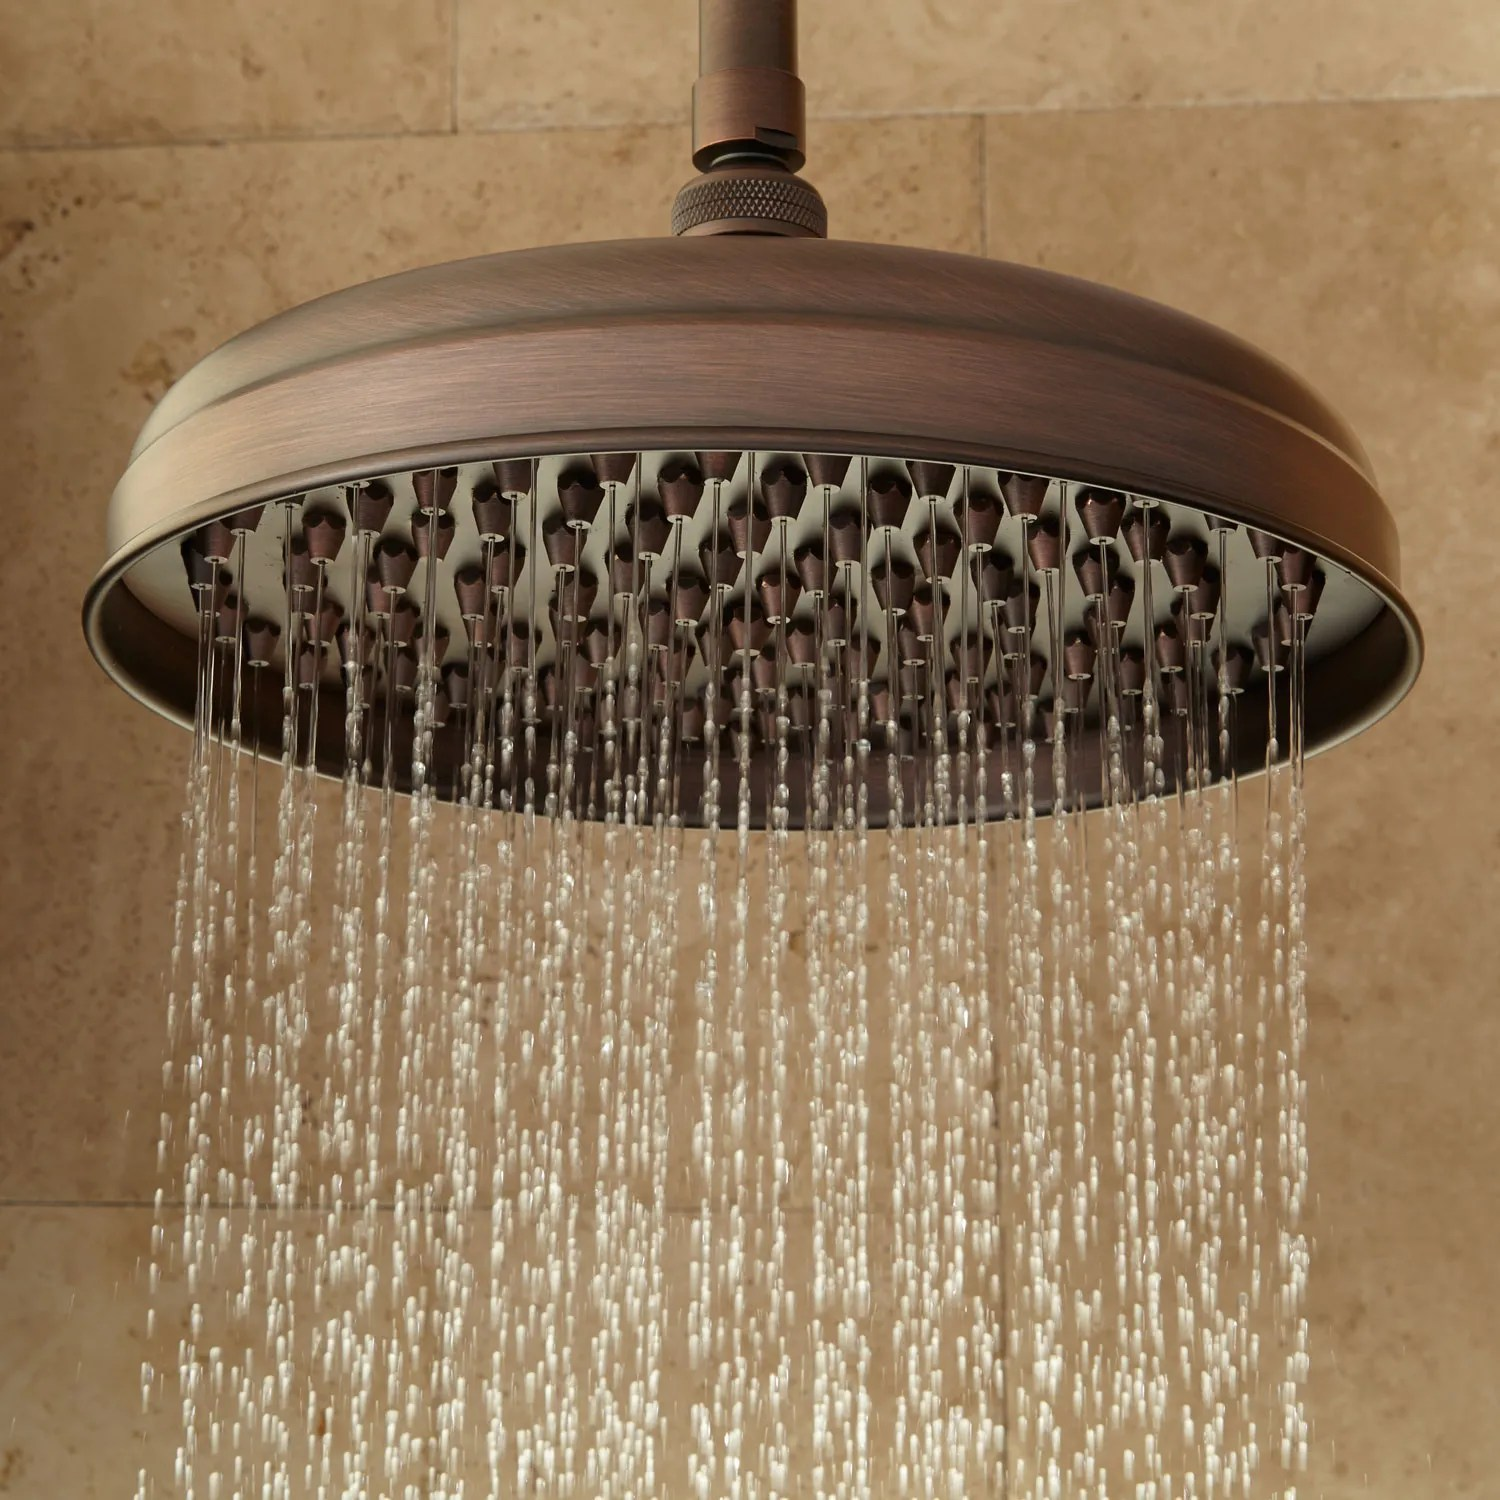 Lambert Rainfall Nozzle Shower Head  Bathroom